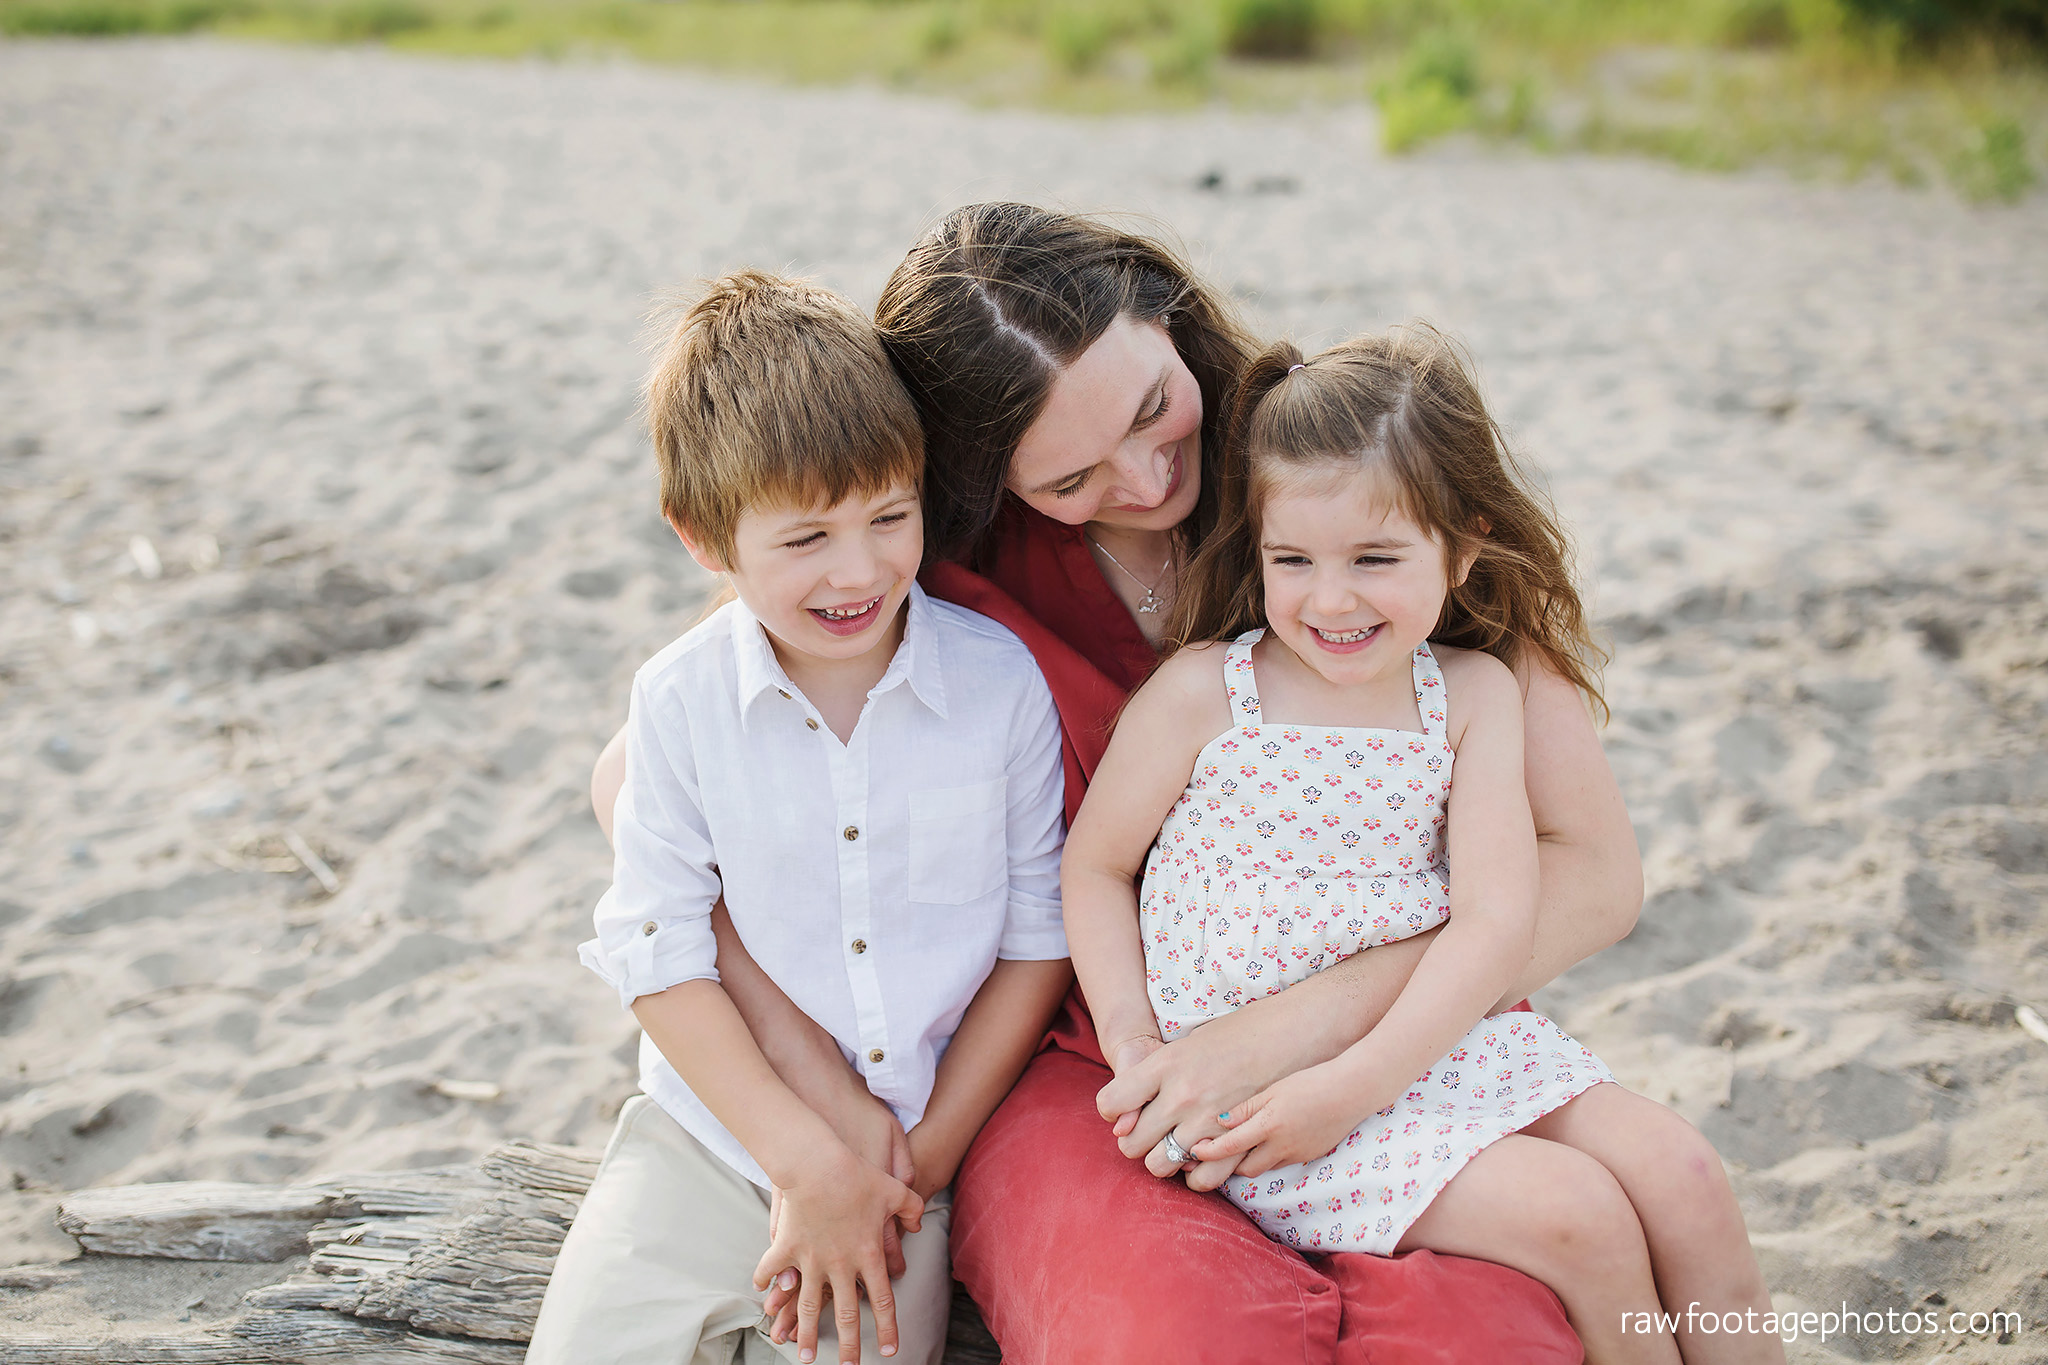 london_ontario_family_photographer-beach_minis-port_stanley_beach-raw_footage_photography001.jpg